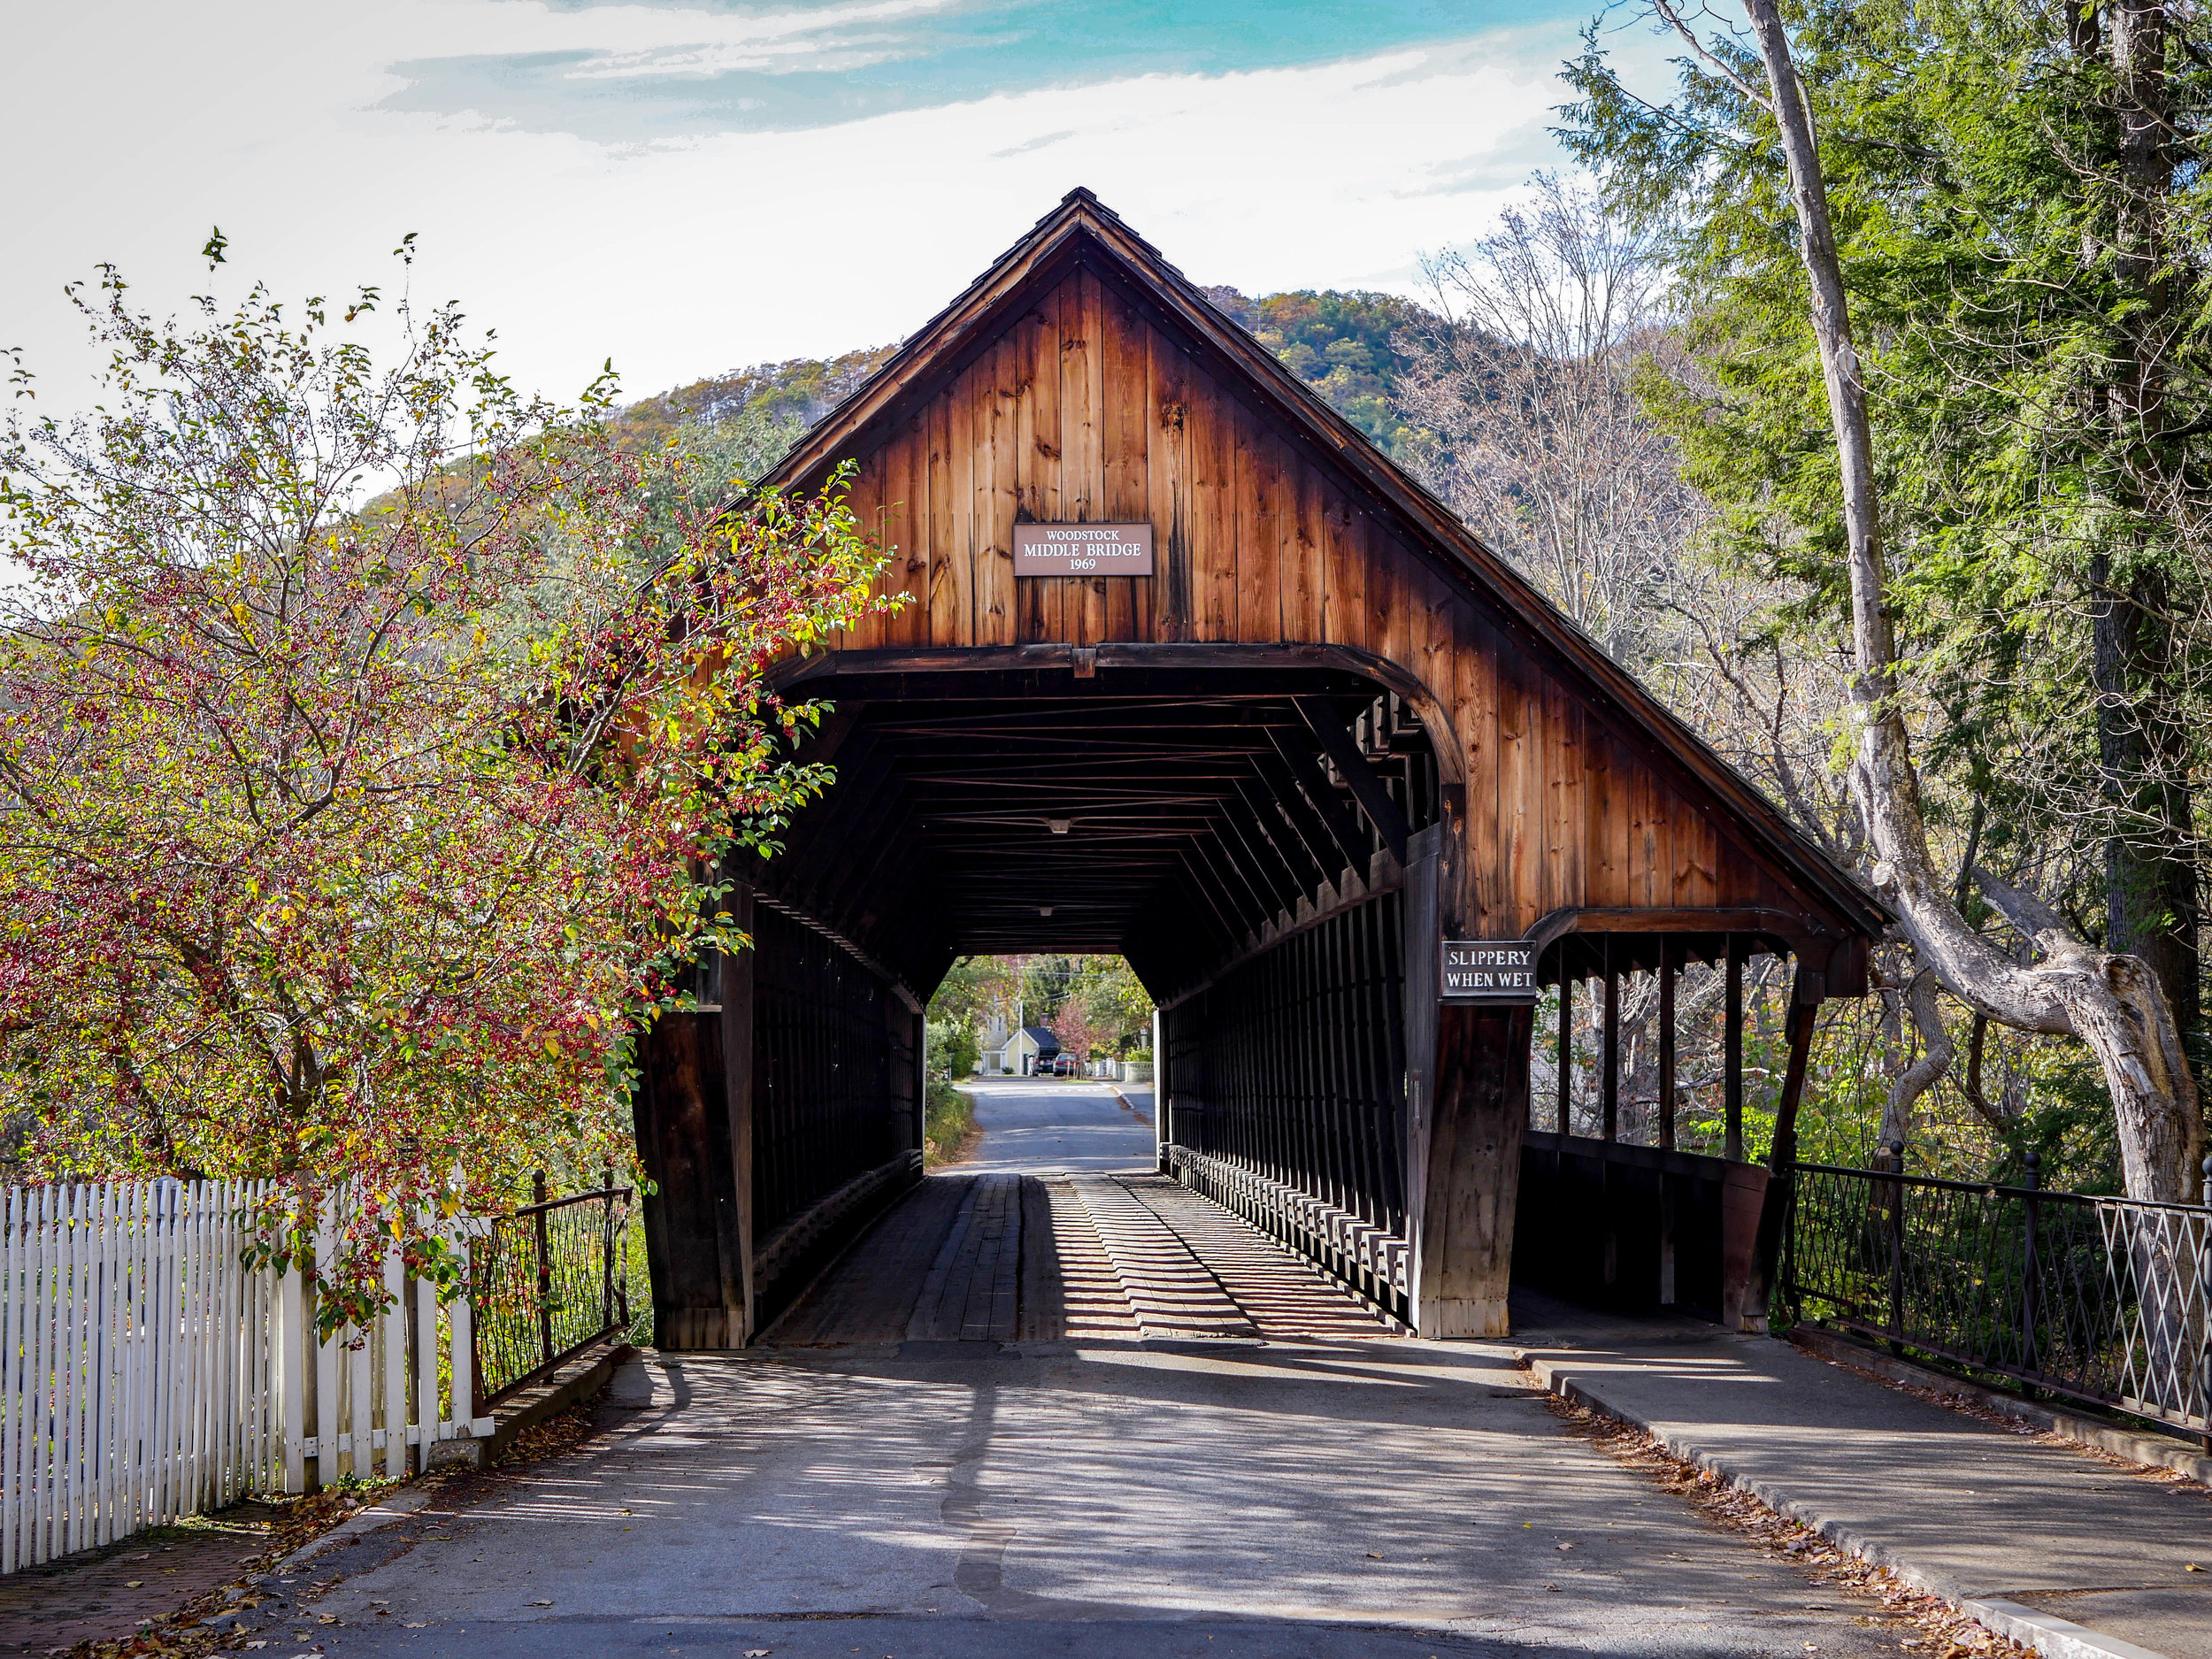 I wish covered bridges were more of a thing on the west coast.